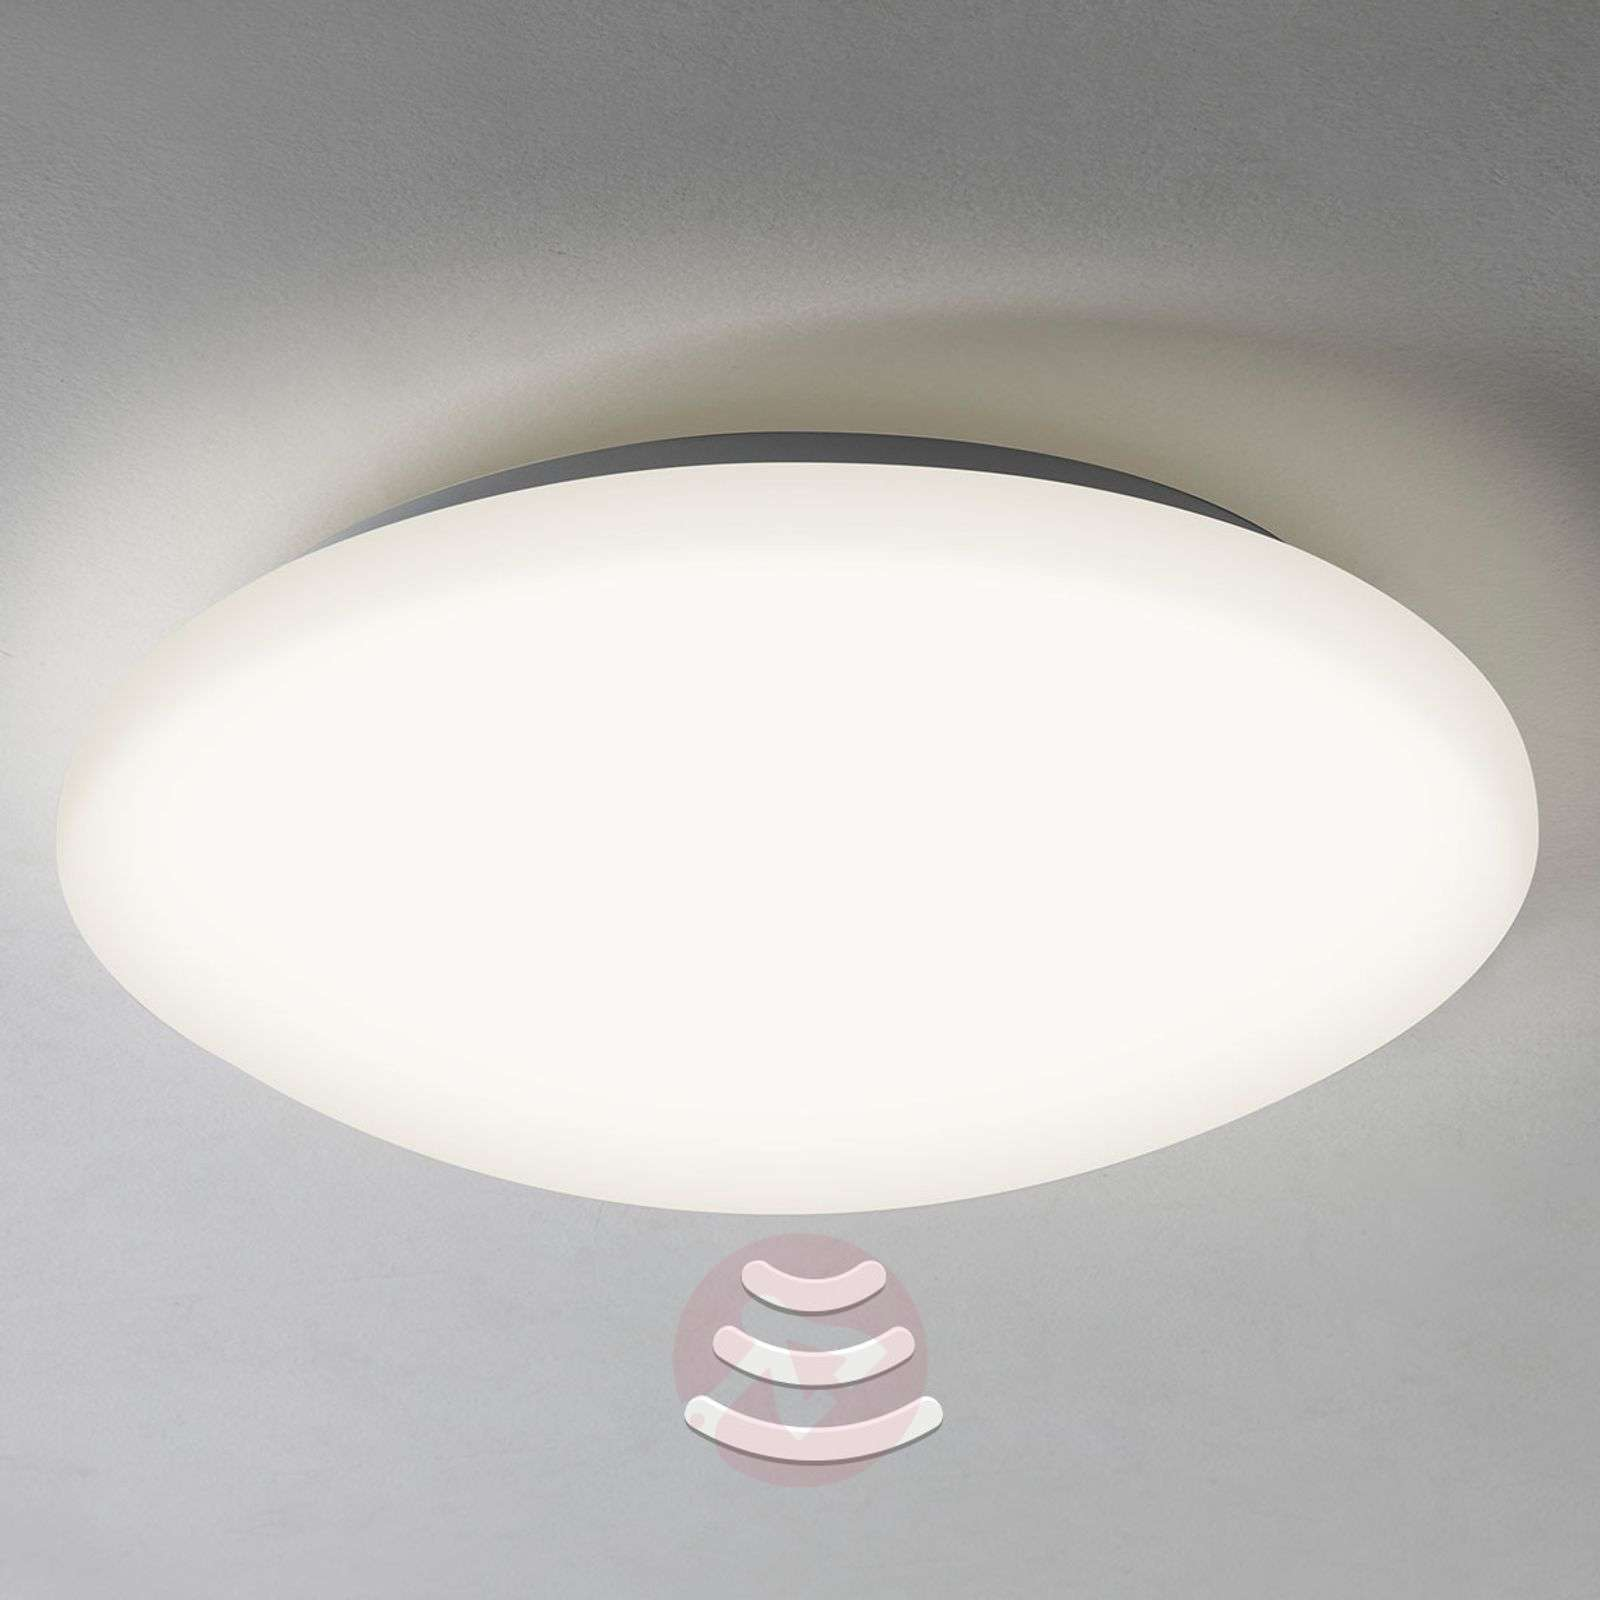 Plafoniera Led Sensore Movimento : Acquista massa plafoniera led con sensore ip lampade